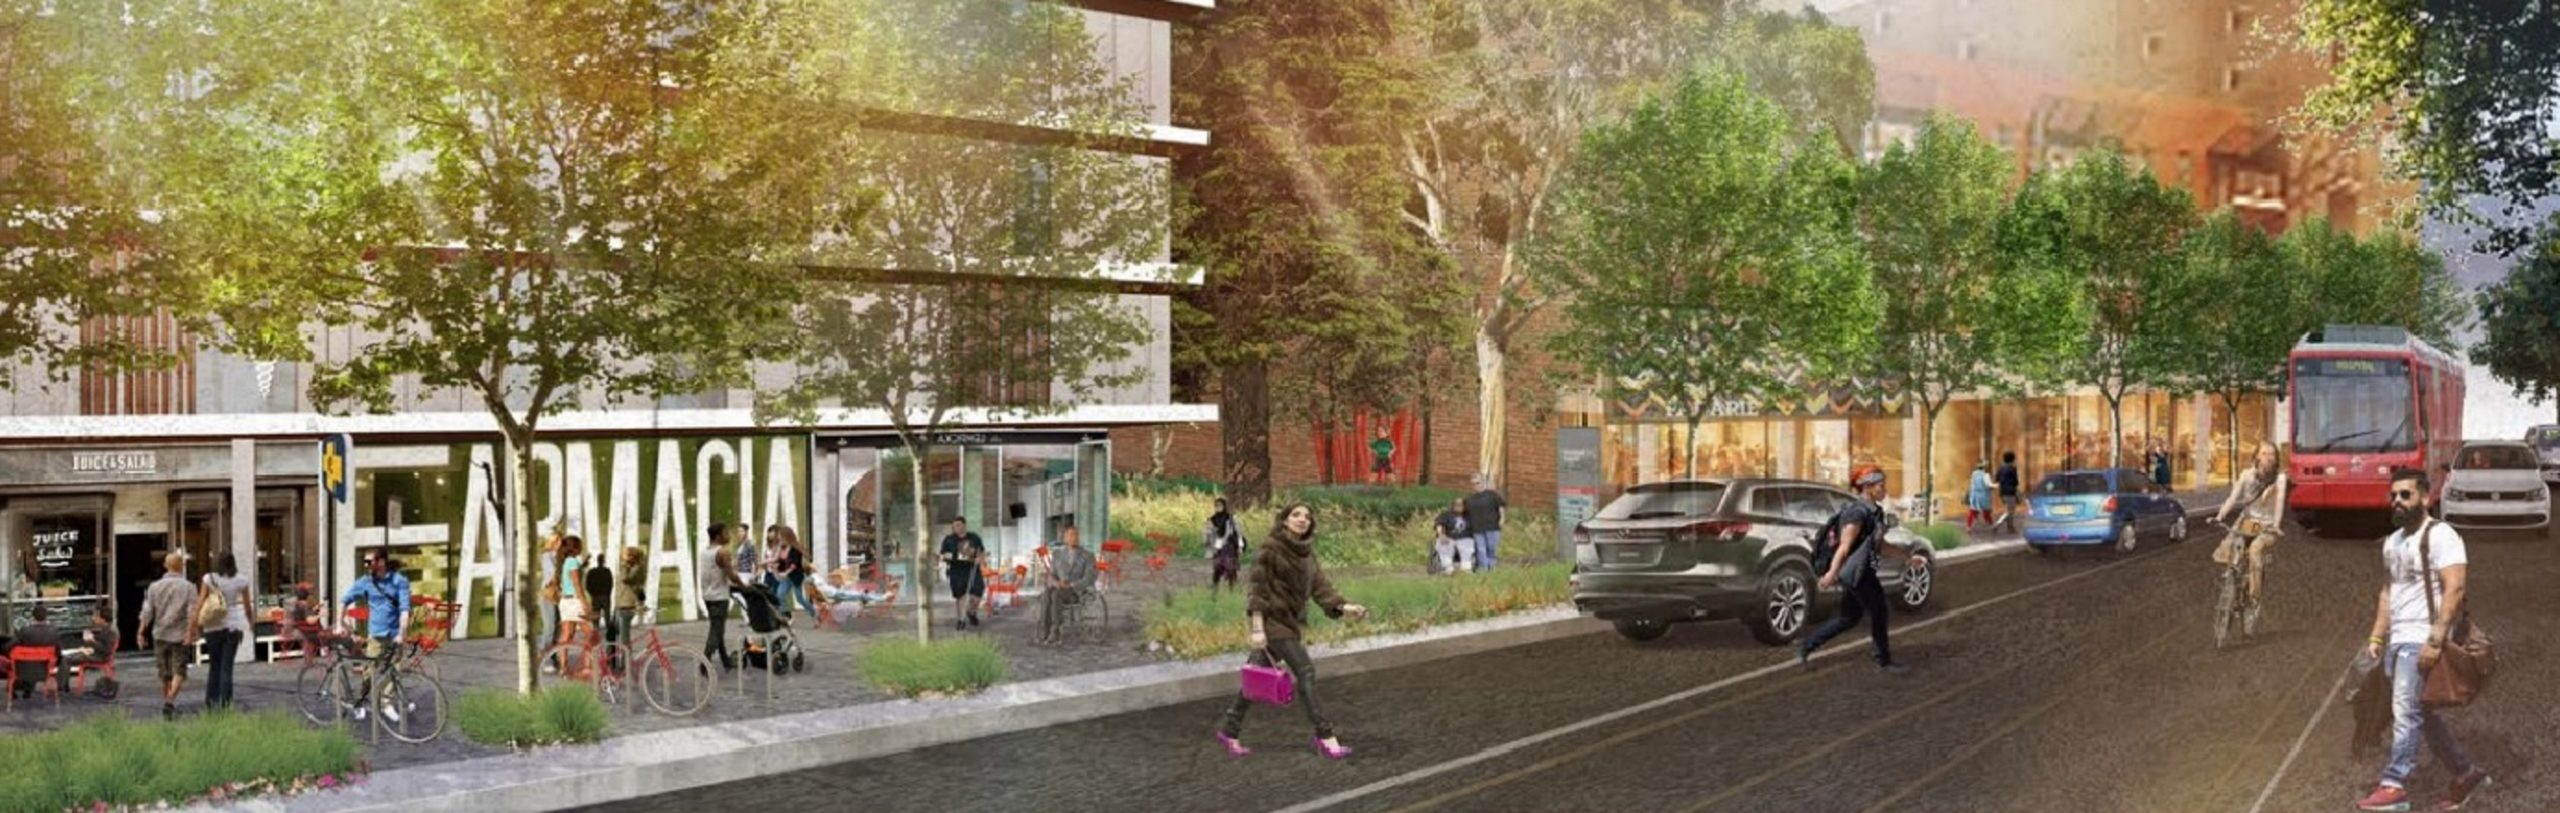 AUSTRALIA'S LARGEST HEALTH PRECINCT MAY BE JUST THE BEGINNING